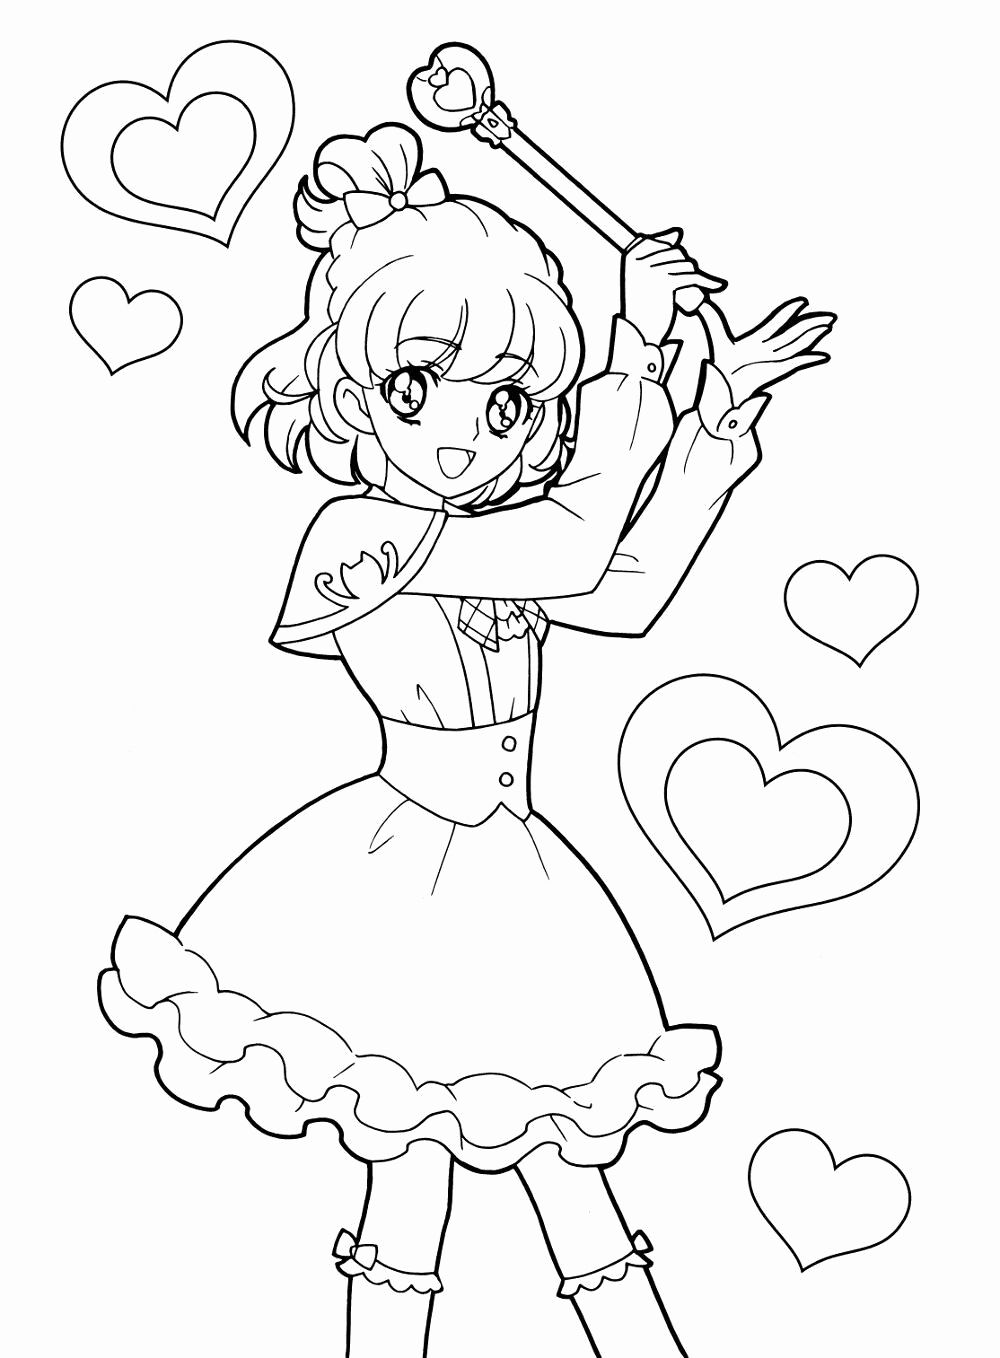 Anime School Girl Coloring Pages Lovely Lineart Coloring Stuff Image By Nicole Kulp In 2020 Sailor Moon Coloring Pages Coloring Pages For Girls Chibi Coloring Pages